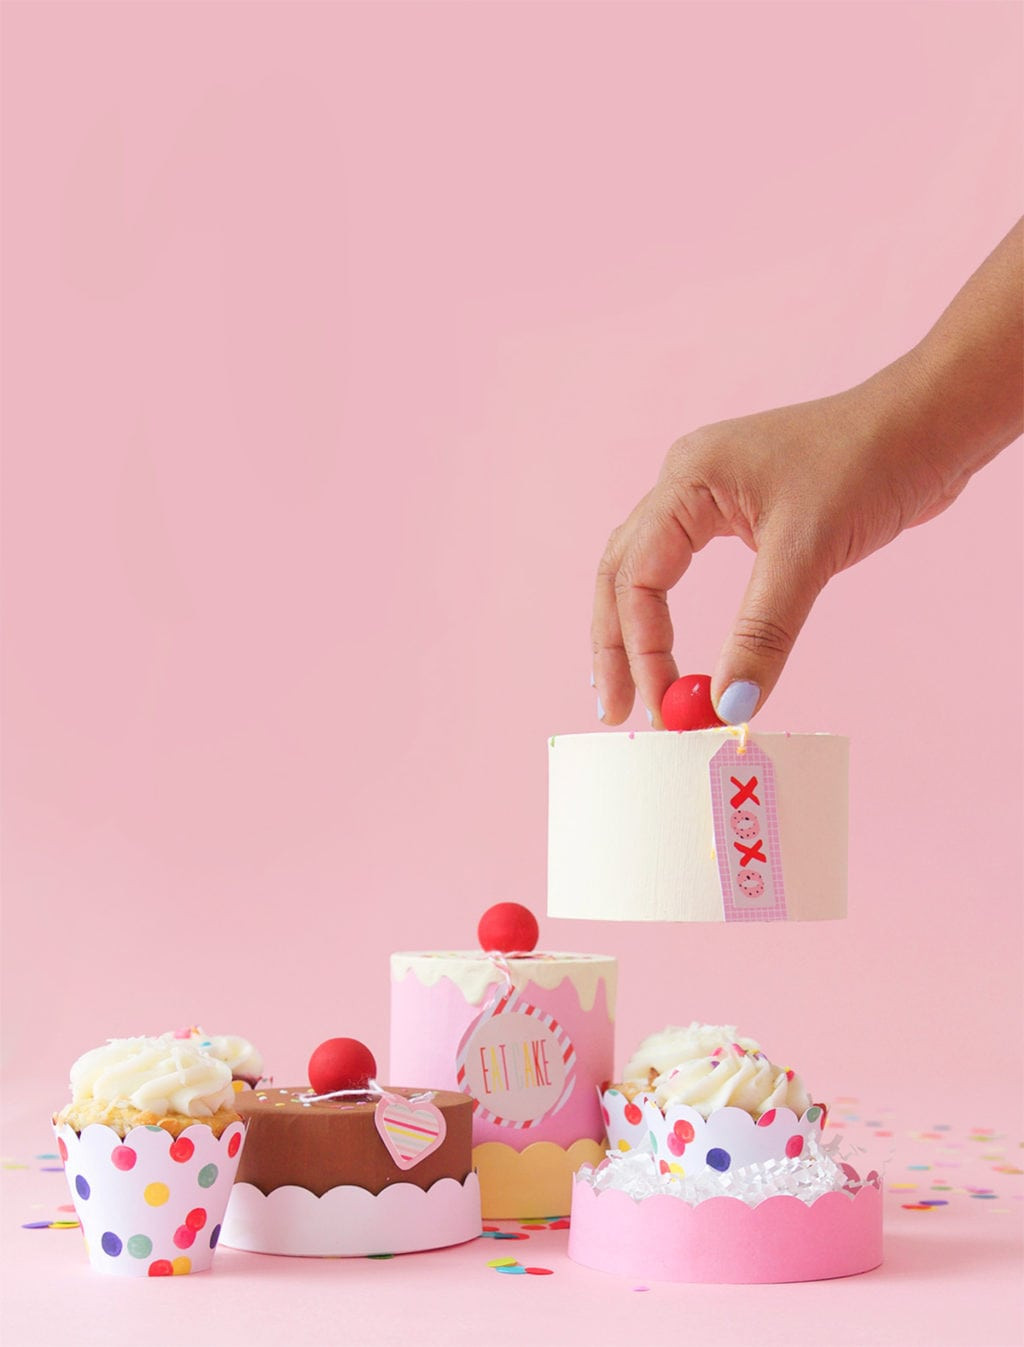 Best ideas about DIY Cake Box . Save or Pin Easy DIY Paper Mache Cake Box Now.